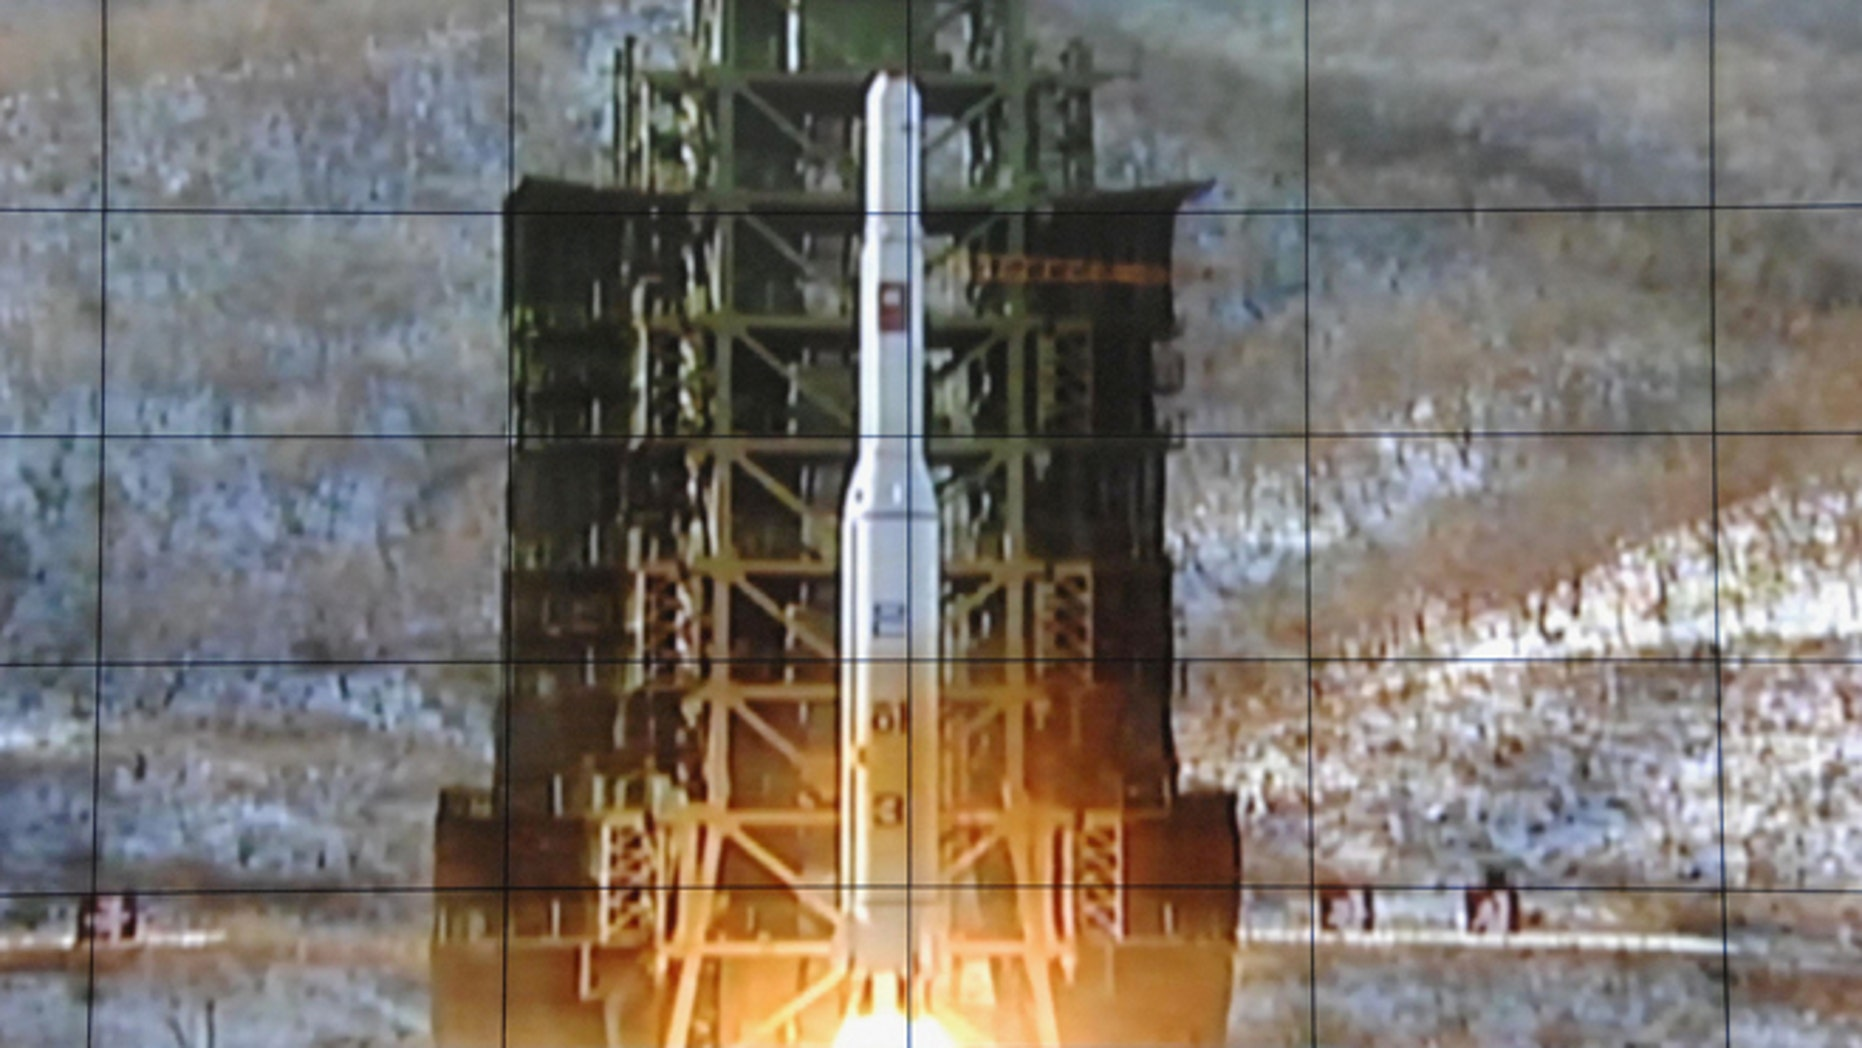 Dec. 12, 2012: A screen shows a rocket being launched from a launch pad at the West Sea Satellite Launch Site, at North Korea's satellite control centre in Cholsan county, North Pyongan province, in this photo released by Kyodo News.